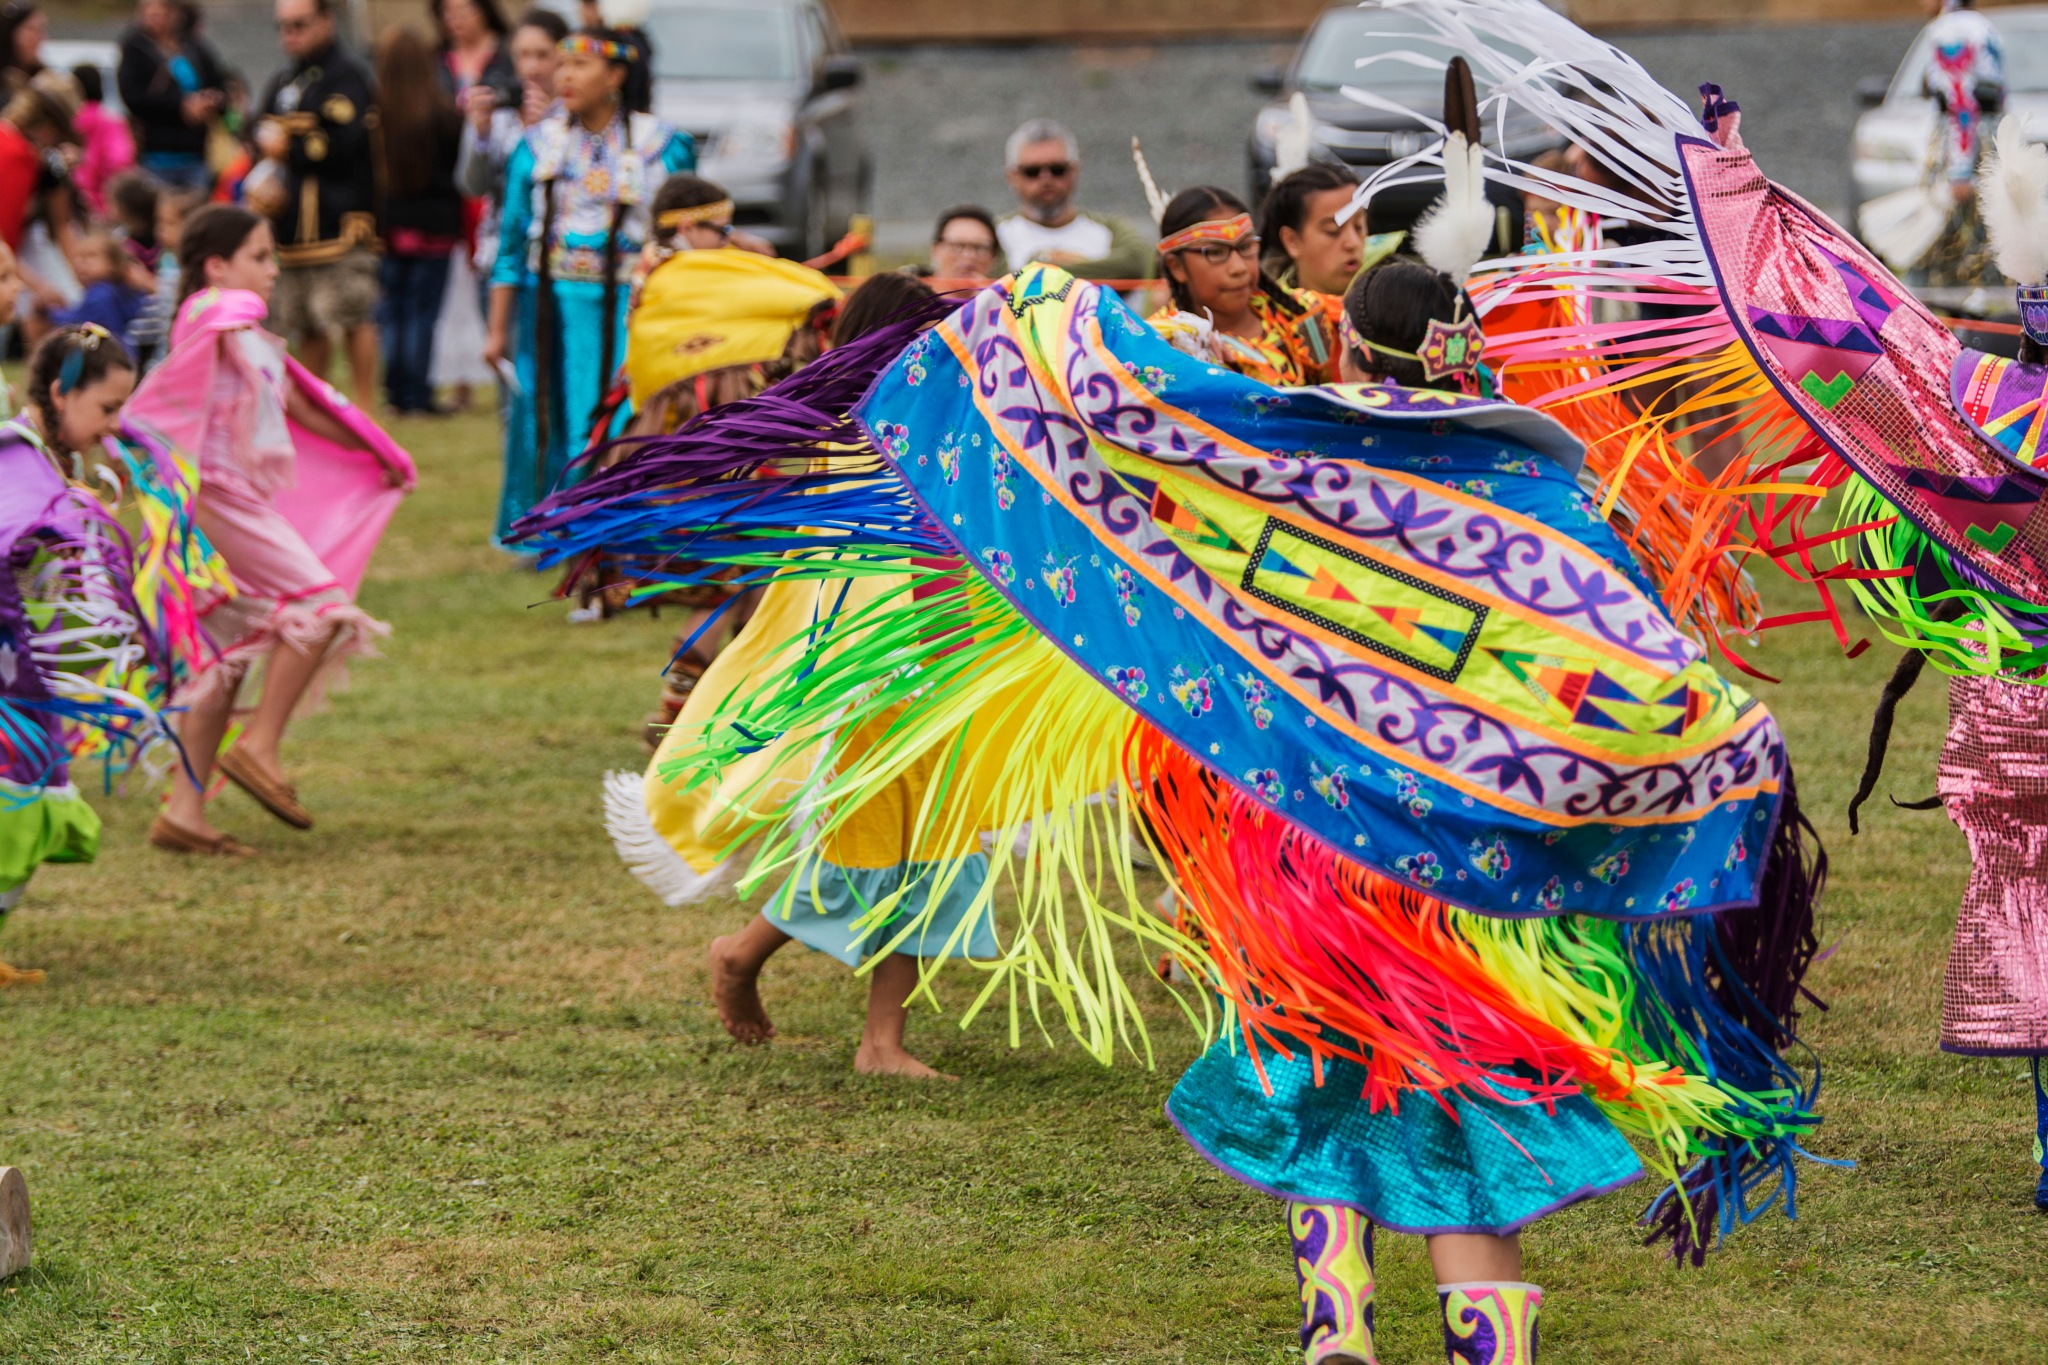 The Brilliant Colours of a PowWow by Wayne L. Talbot